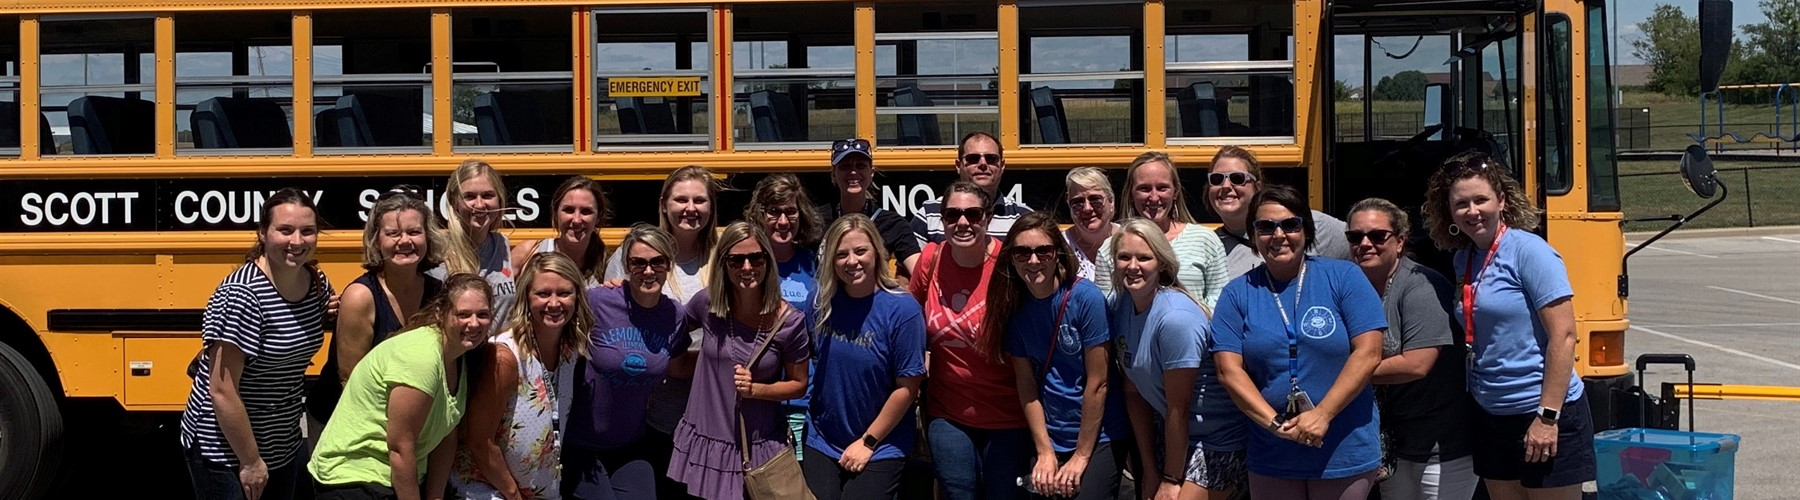 Staff rides the bus routes!